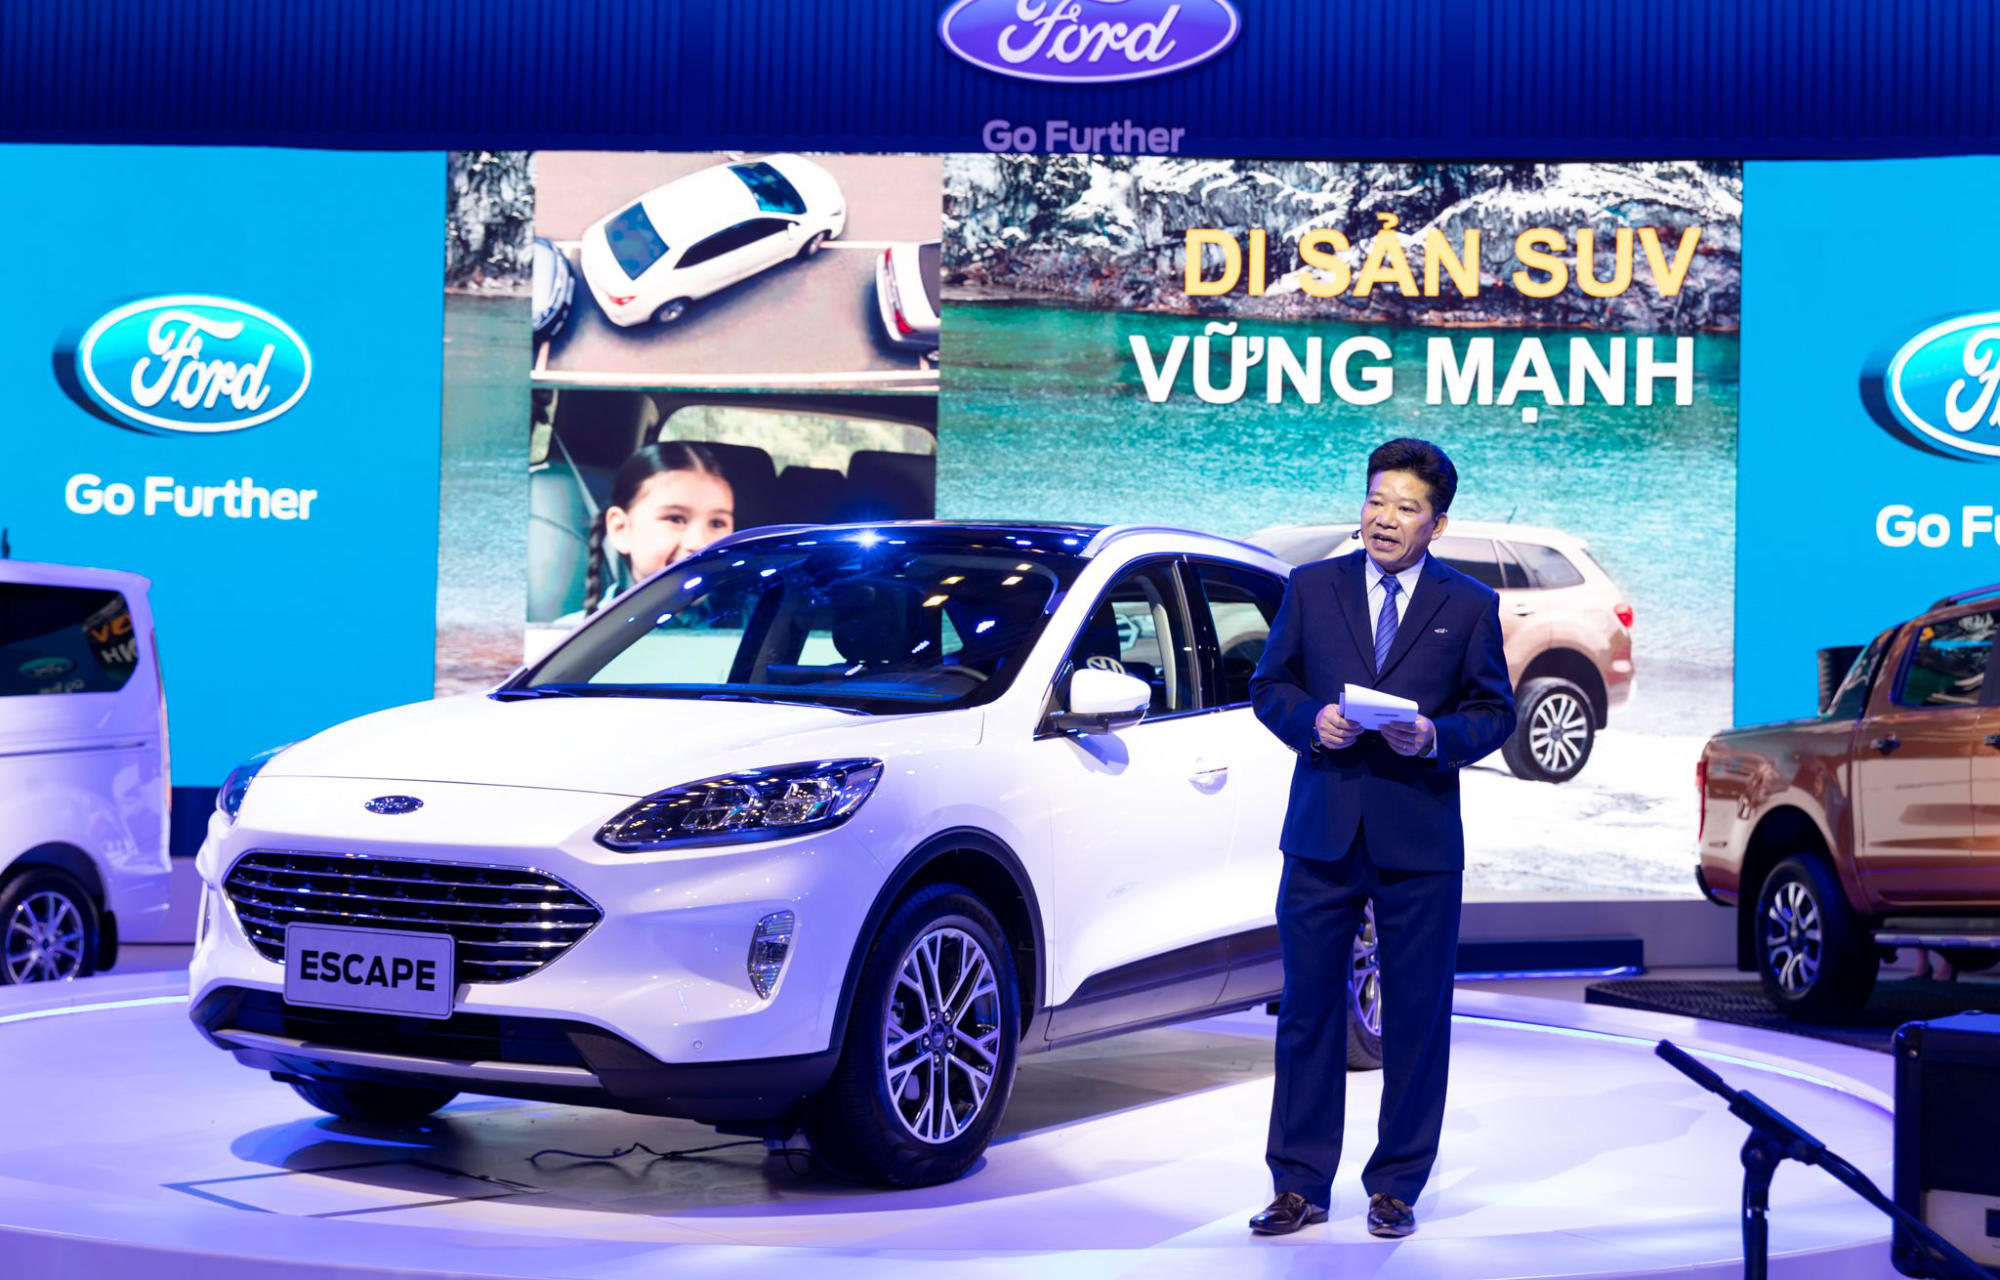 Motor-Show-Vietnam-City-Ford